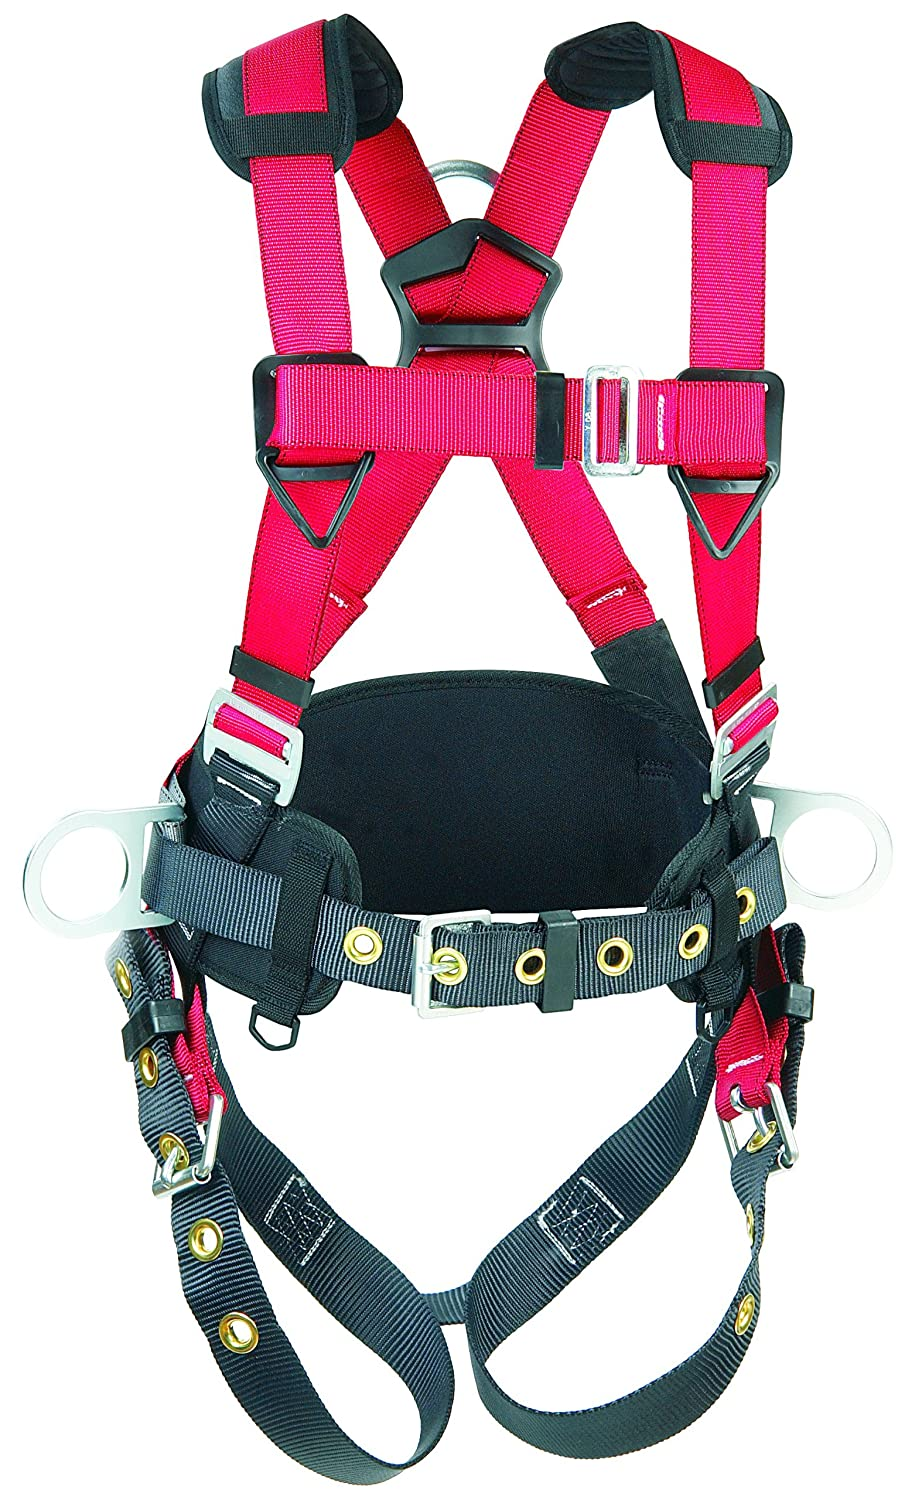 Protecta 1191209'Pro Line' Construction Vest Style Full Body Harness, Medium/Large, Red/Gray Capital Safety